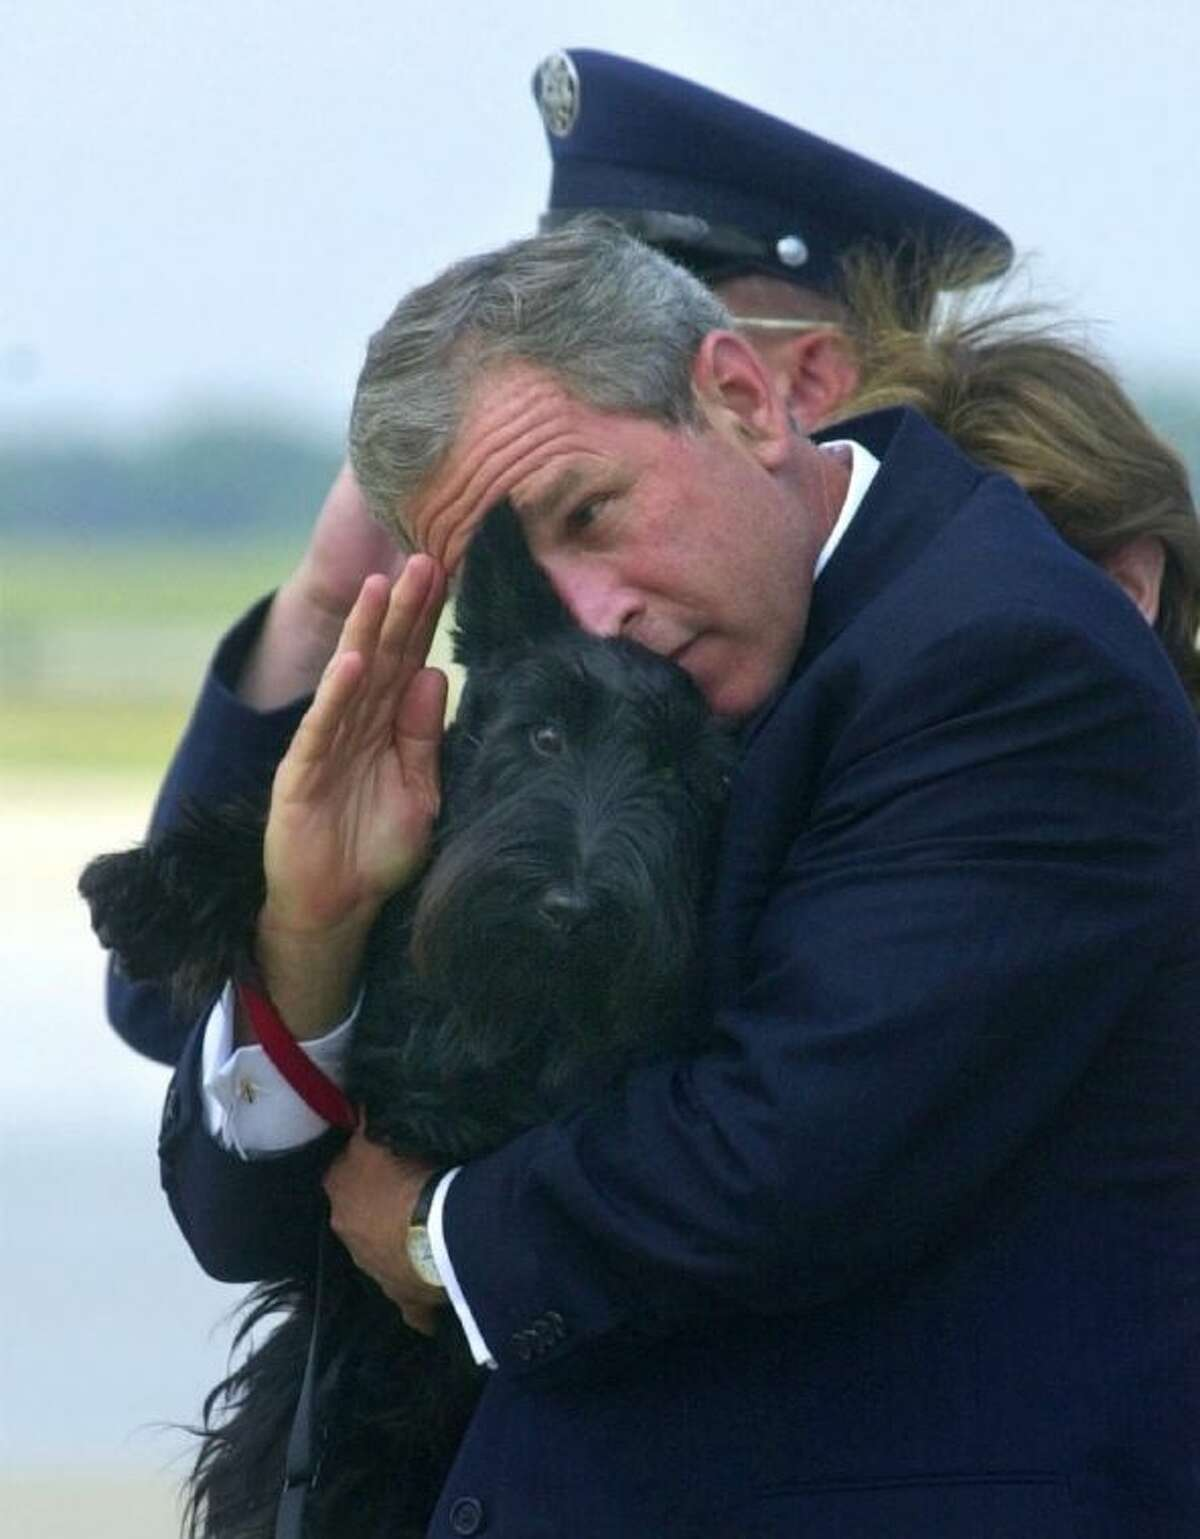 In this June 25, 2001 file photo, President Bush does his best to salute while holding his dog Barney as they get off of Air Force One at Andrews Air Force Base, Md. Barney, former White House Scottish Terrier and star of holiday videos shot during President George W. Bush's administration, has died after suffering from cancer. He was 12.